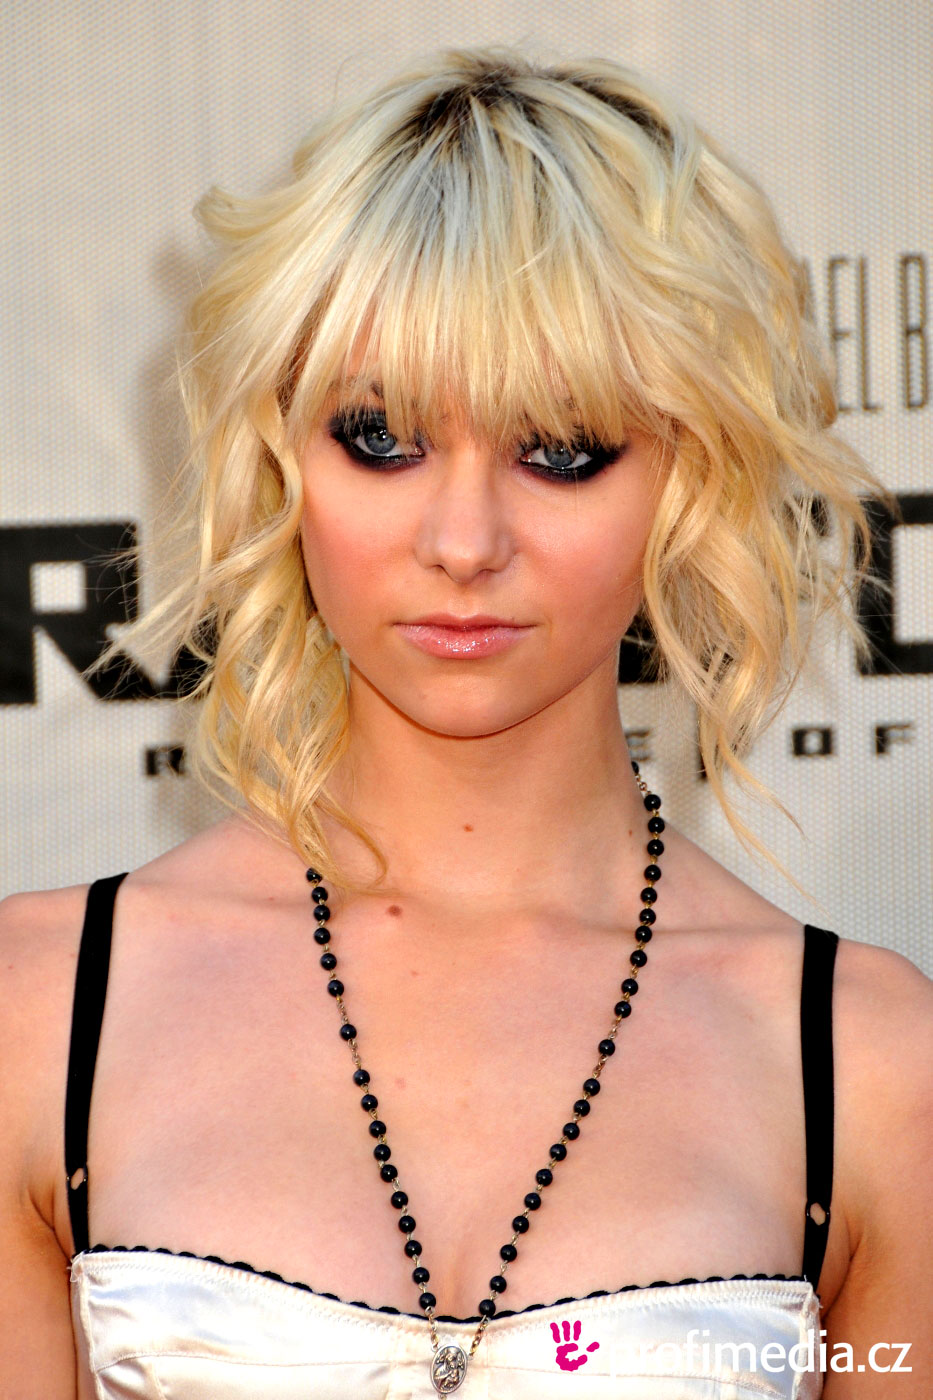 taylor momsen hairstyles : related taylor momsen hair 2013 taylor momsen hair bangs taylor momsen ...